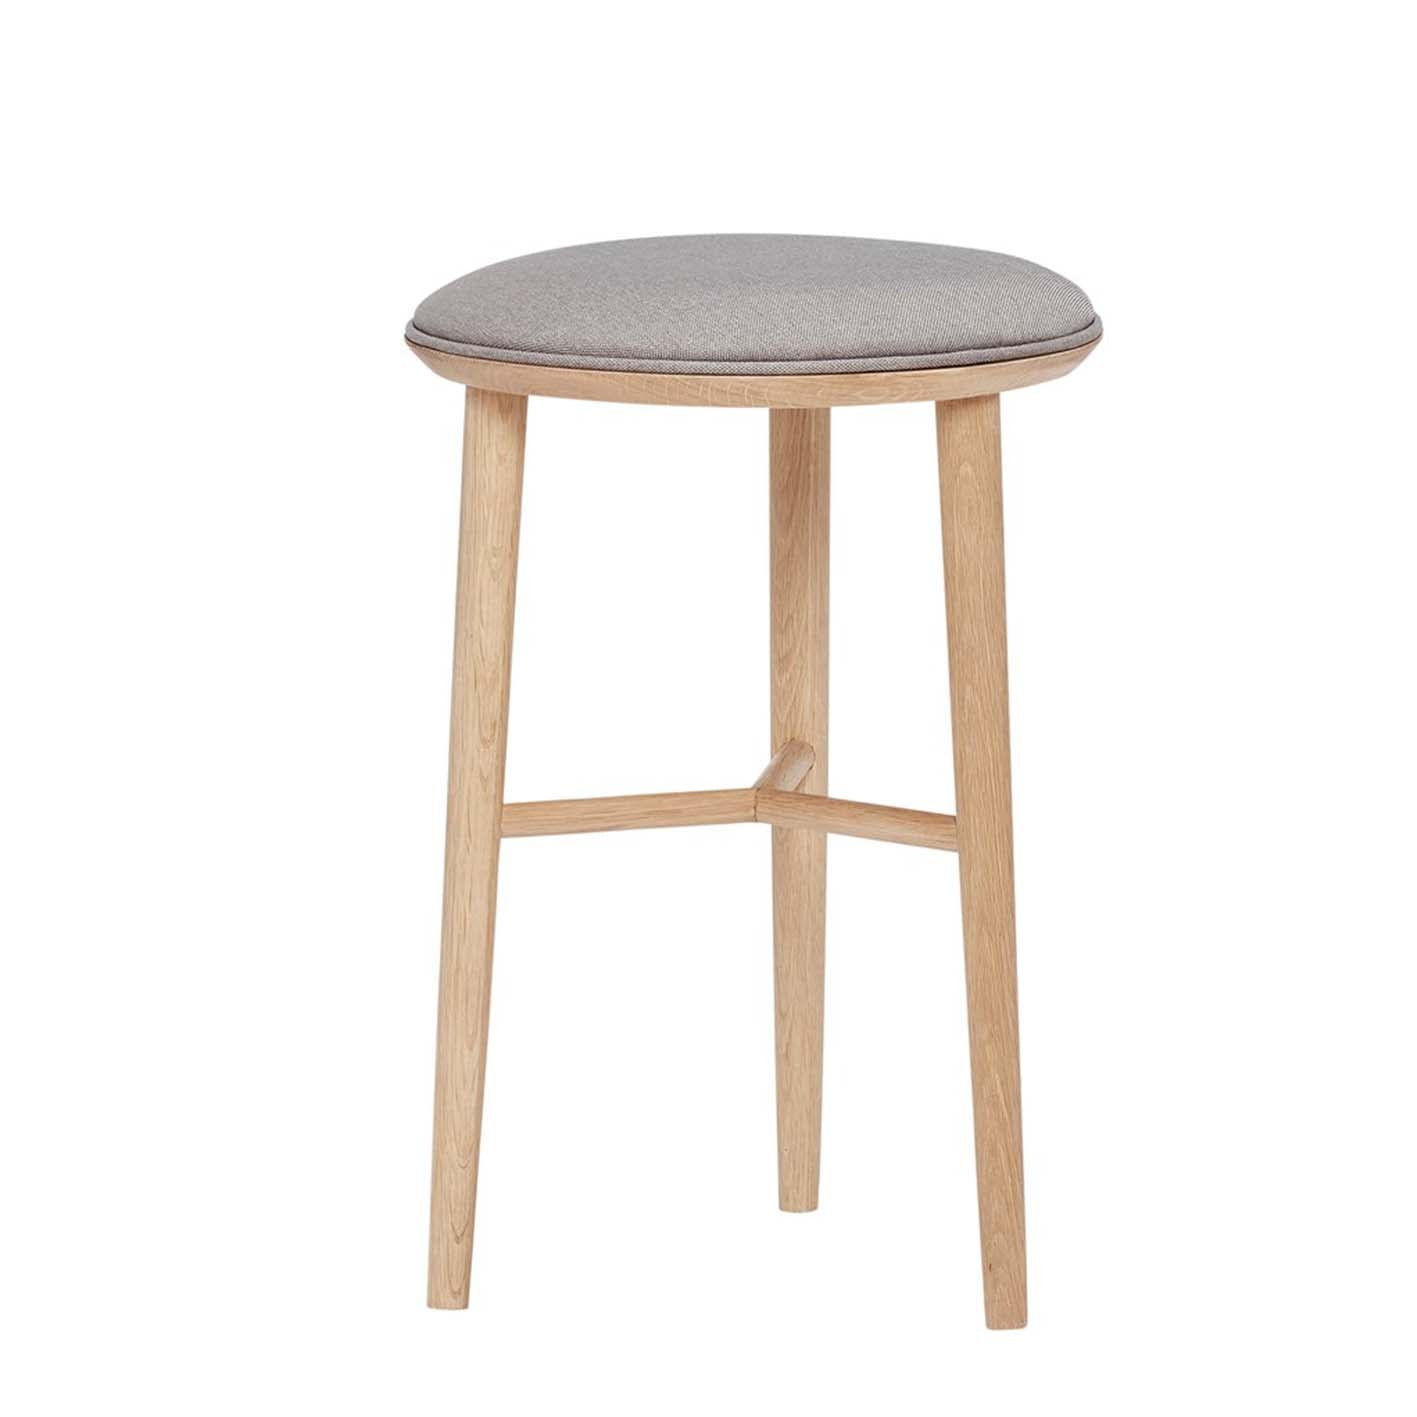 stools store chairs with adjustable short used without kitchen swivel steel friday black breakfast backs exciting grande lear vintage tall bar barstool industrial wooden examplary smart metal toronto style zq stool counter